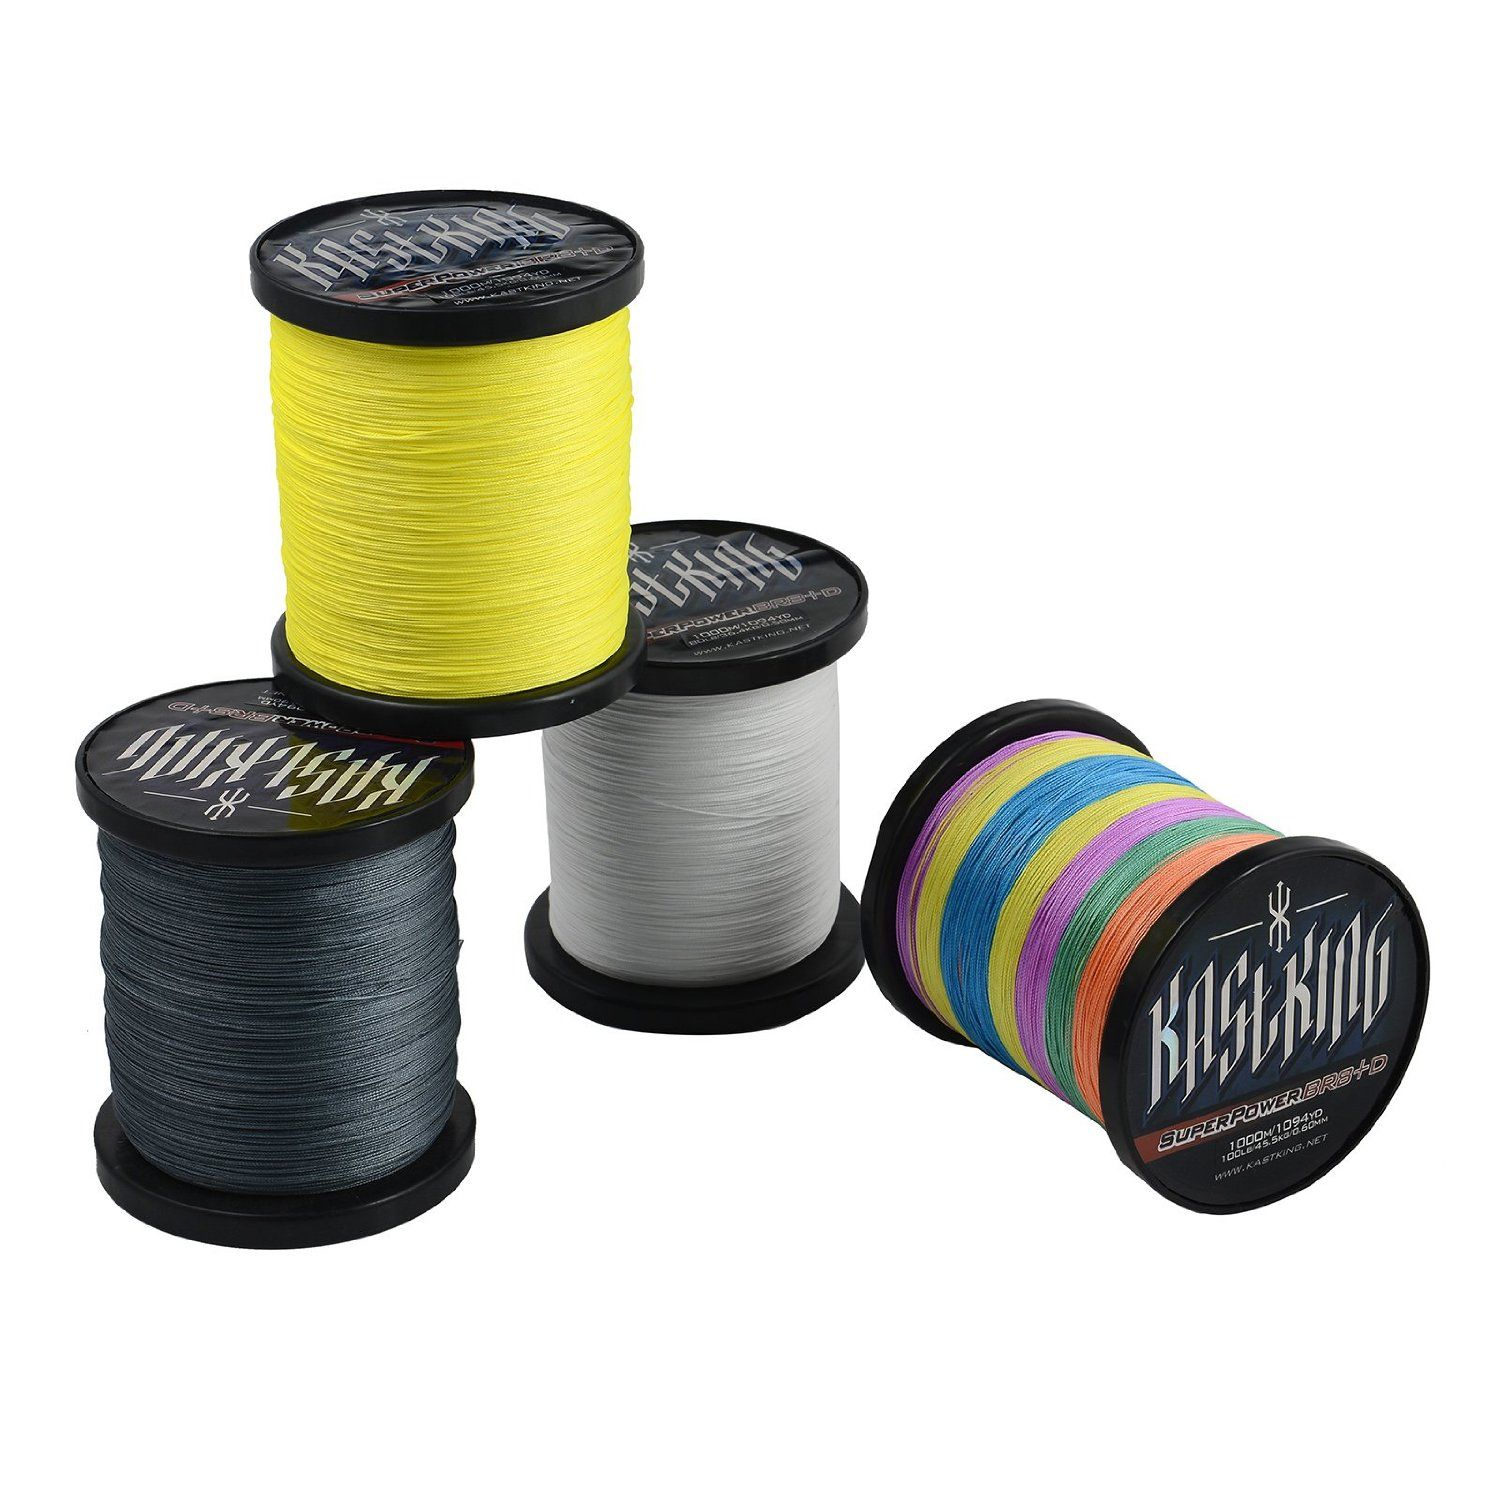 Best braided fishing line on the market in 2015 for Braid fishing line